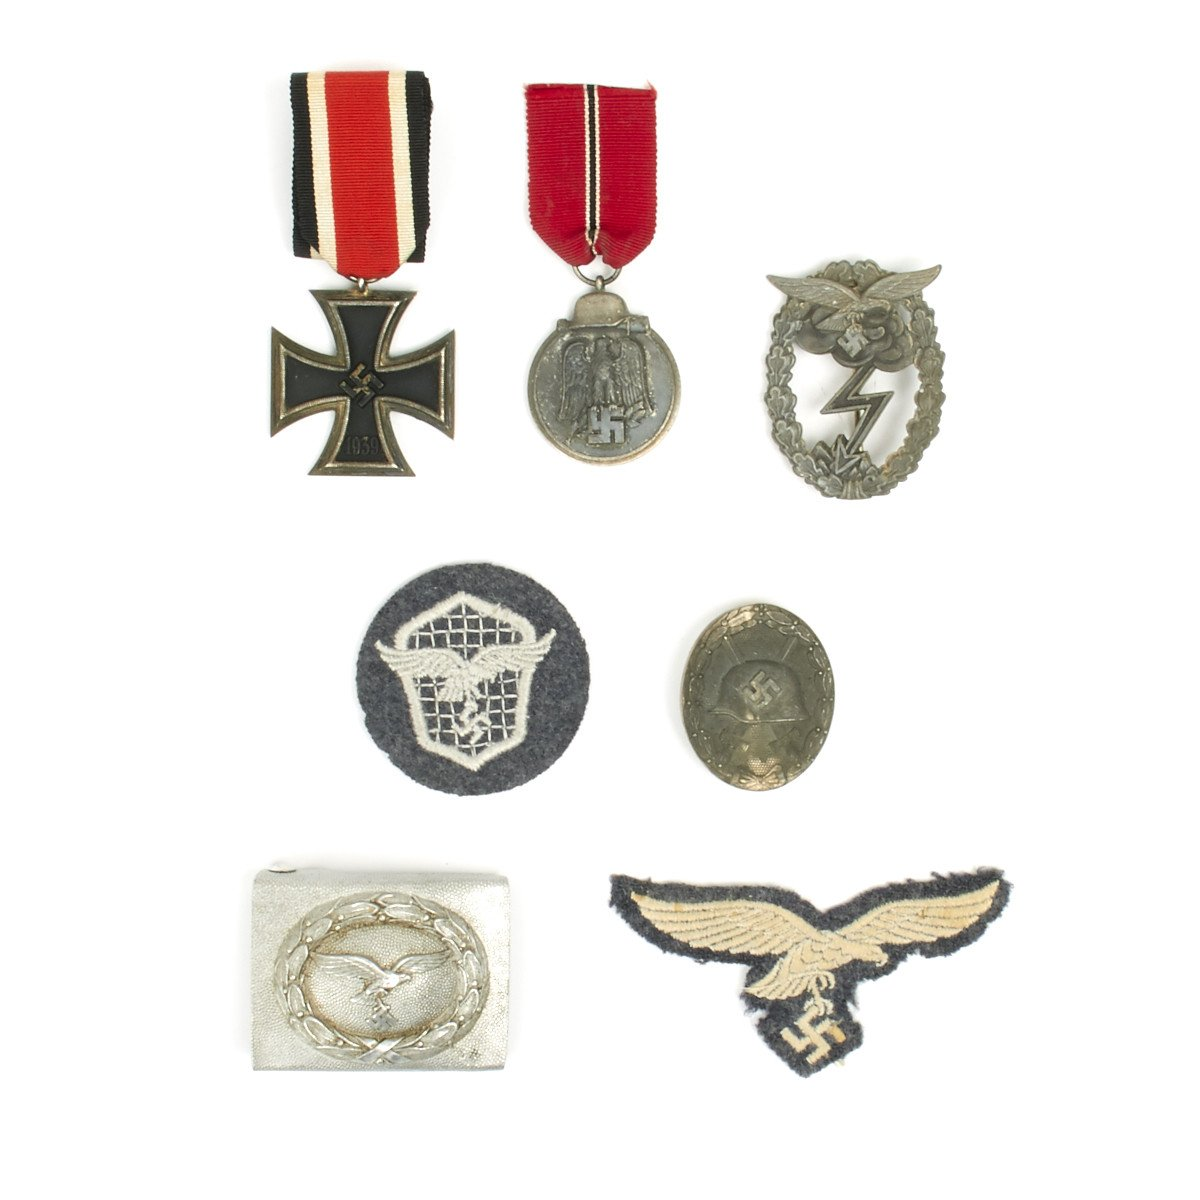 Original German WWII Luftwaffe Medal and Insignia Grouping